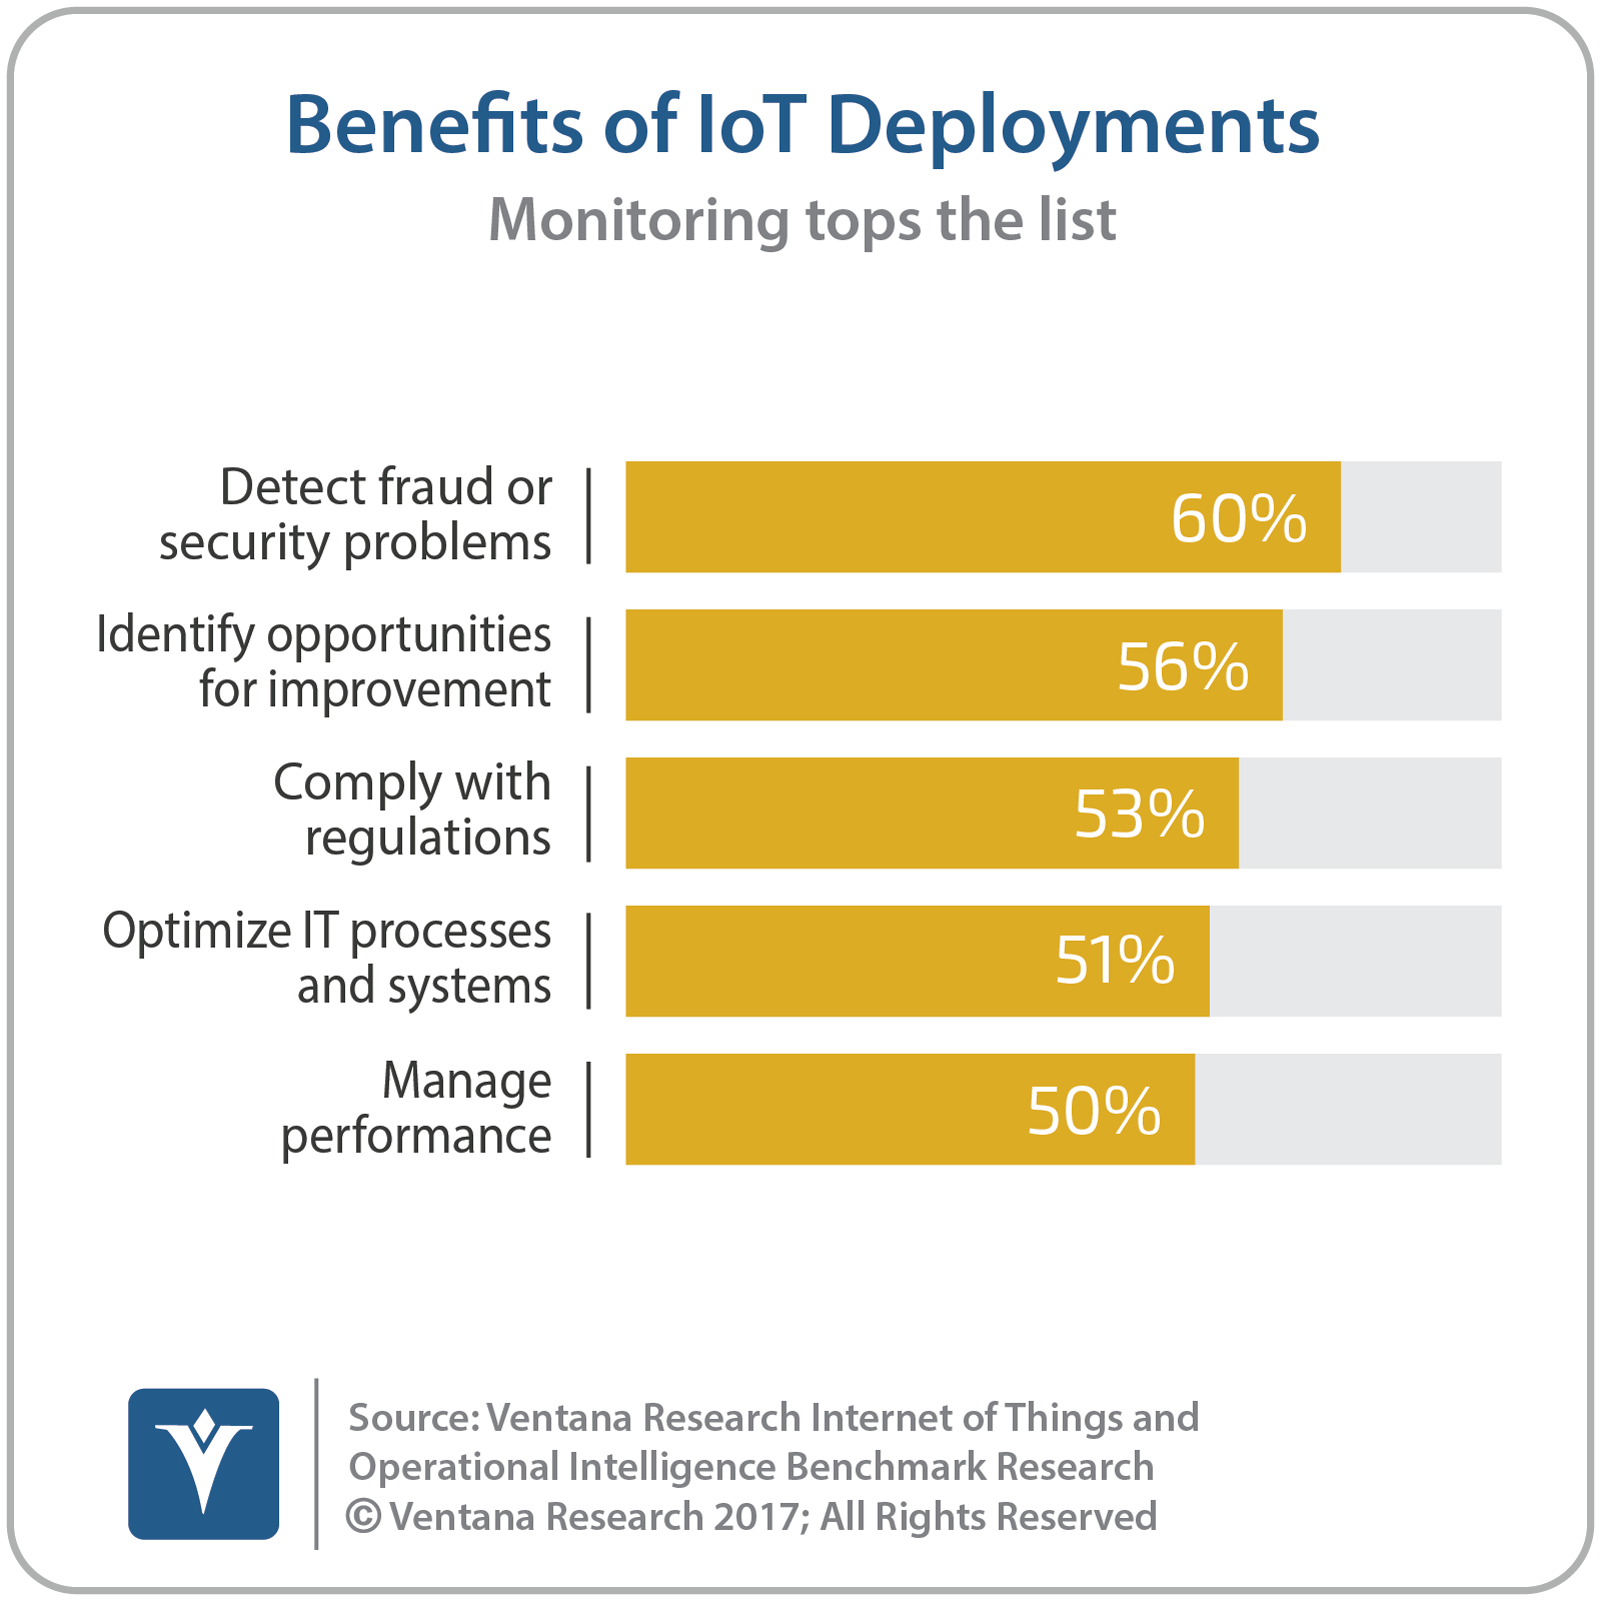 vr_IoT_and_OI_11_benefits_of_IoT_deployments-1